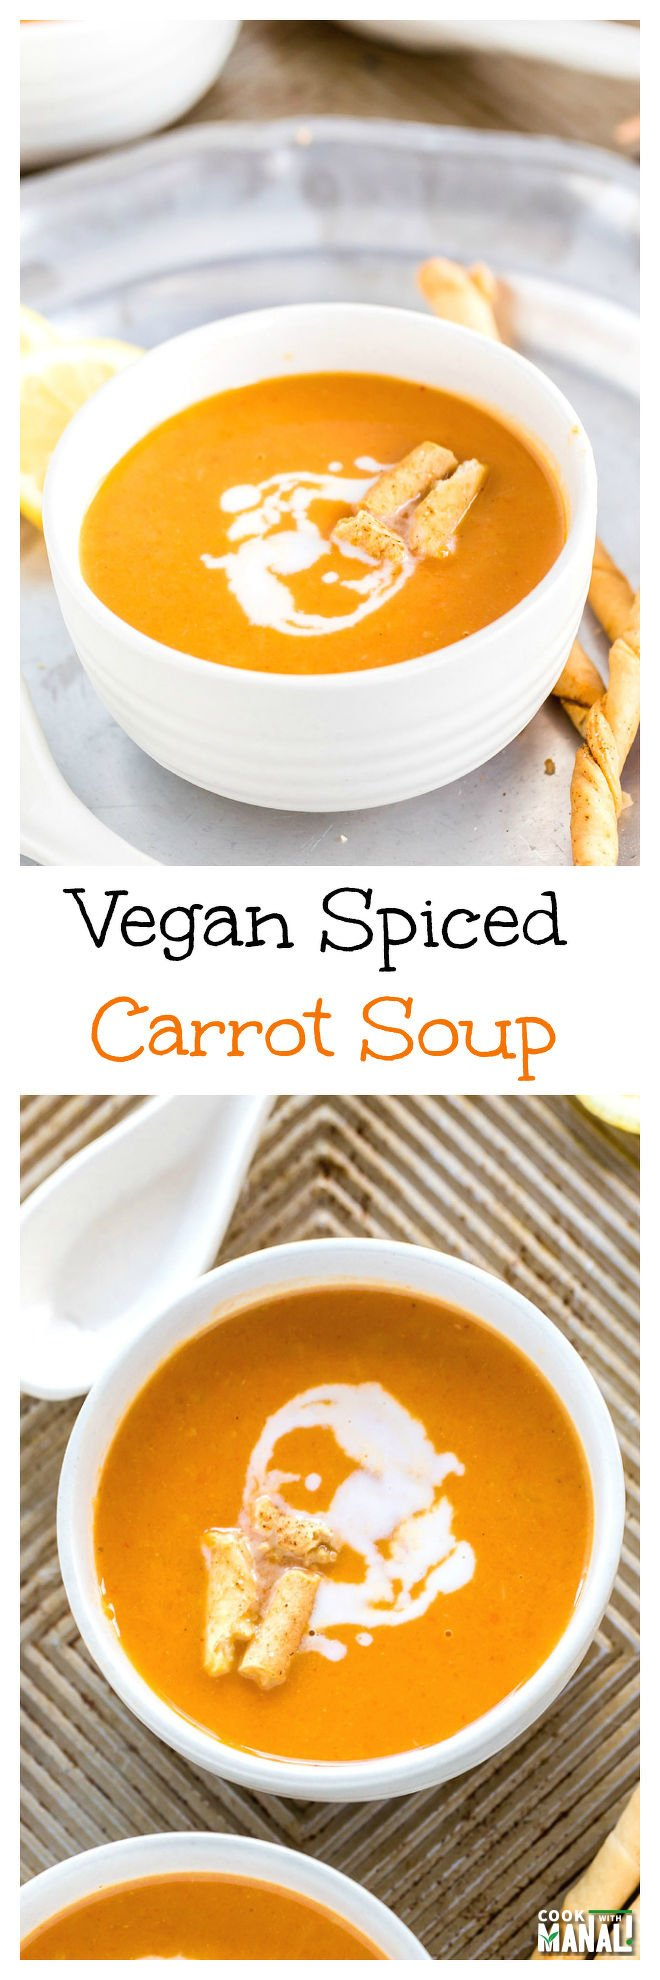 Vegan Spiced Carrot Soup Collage